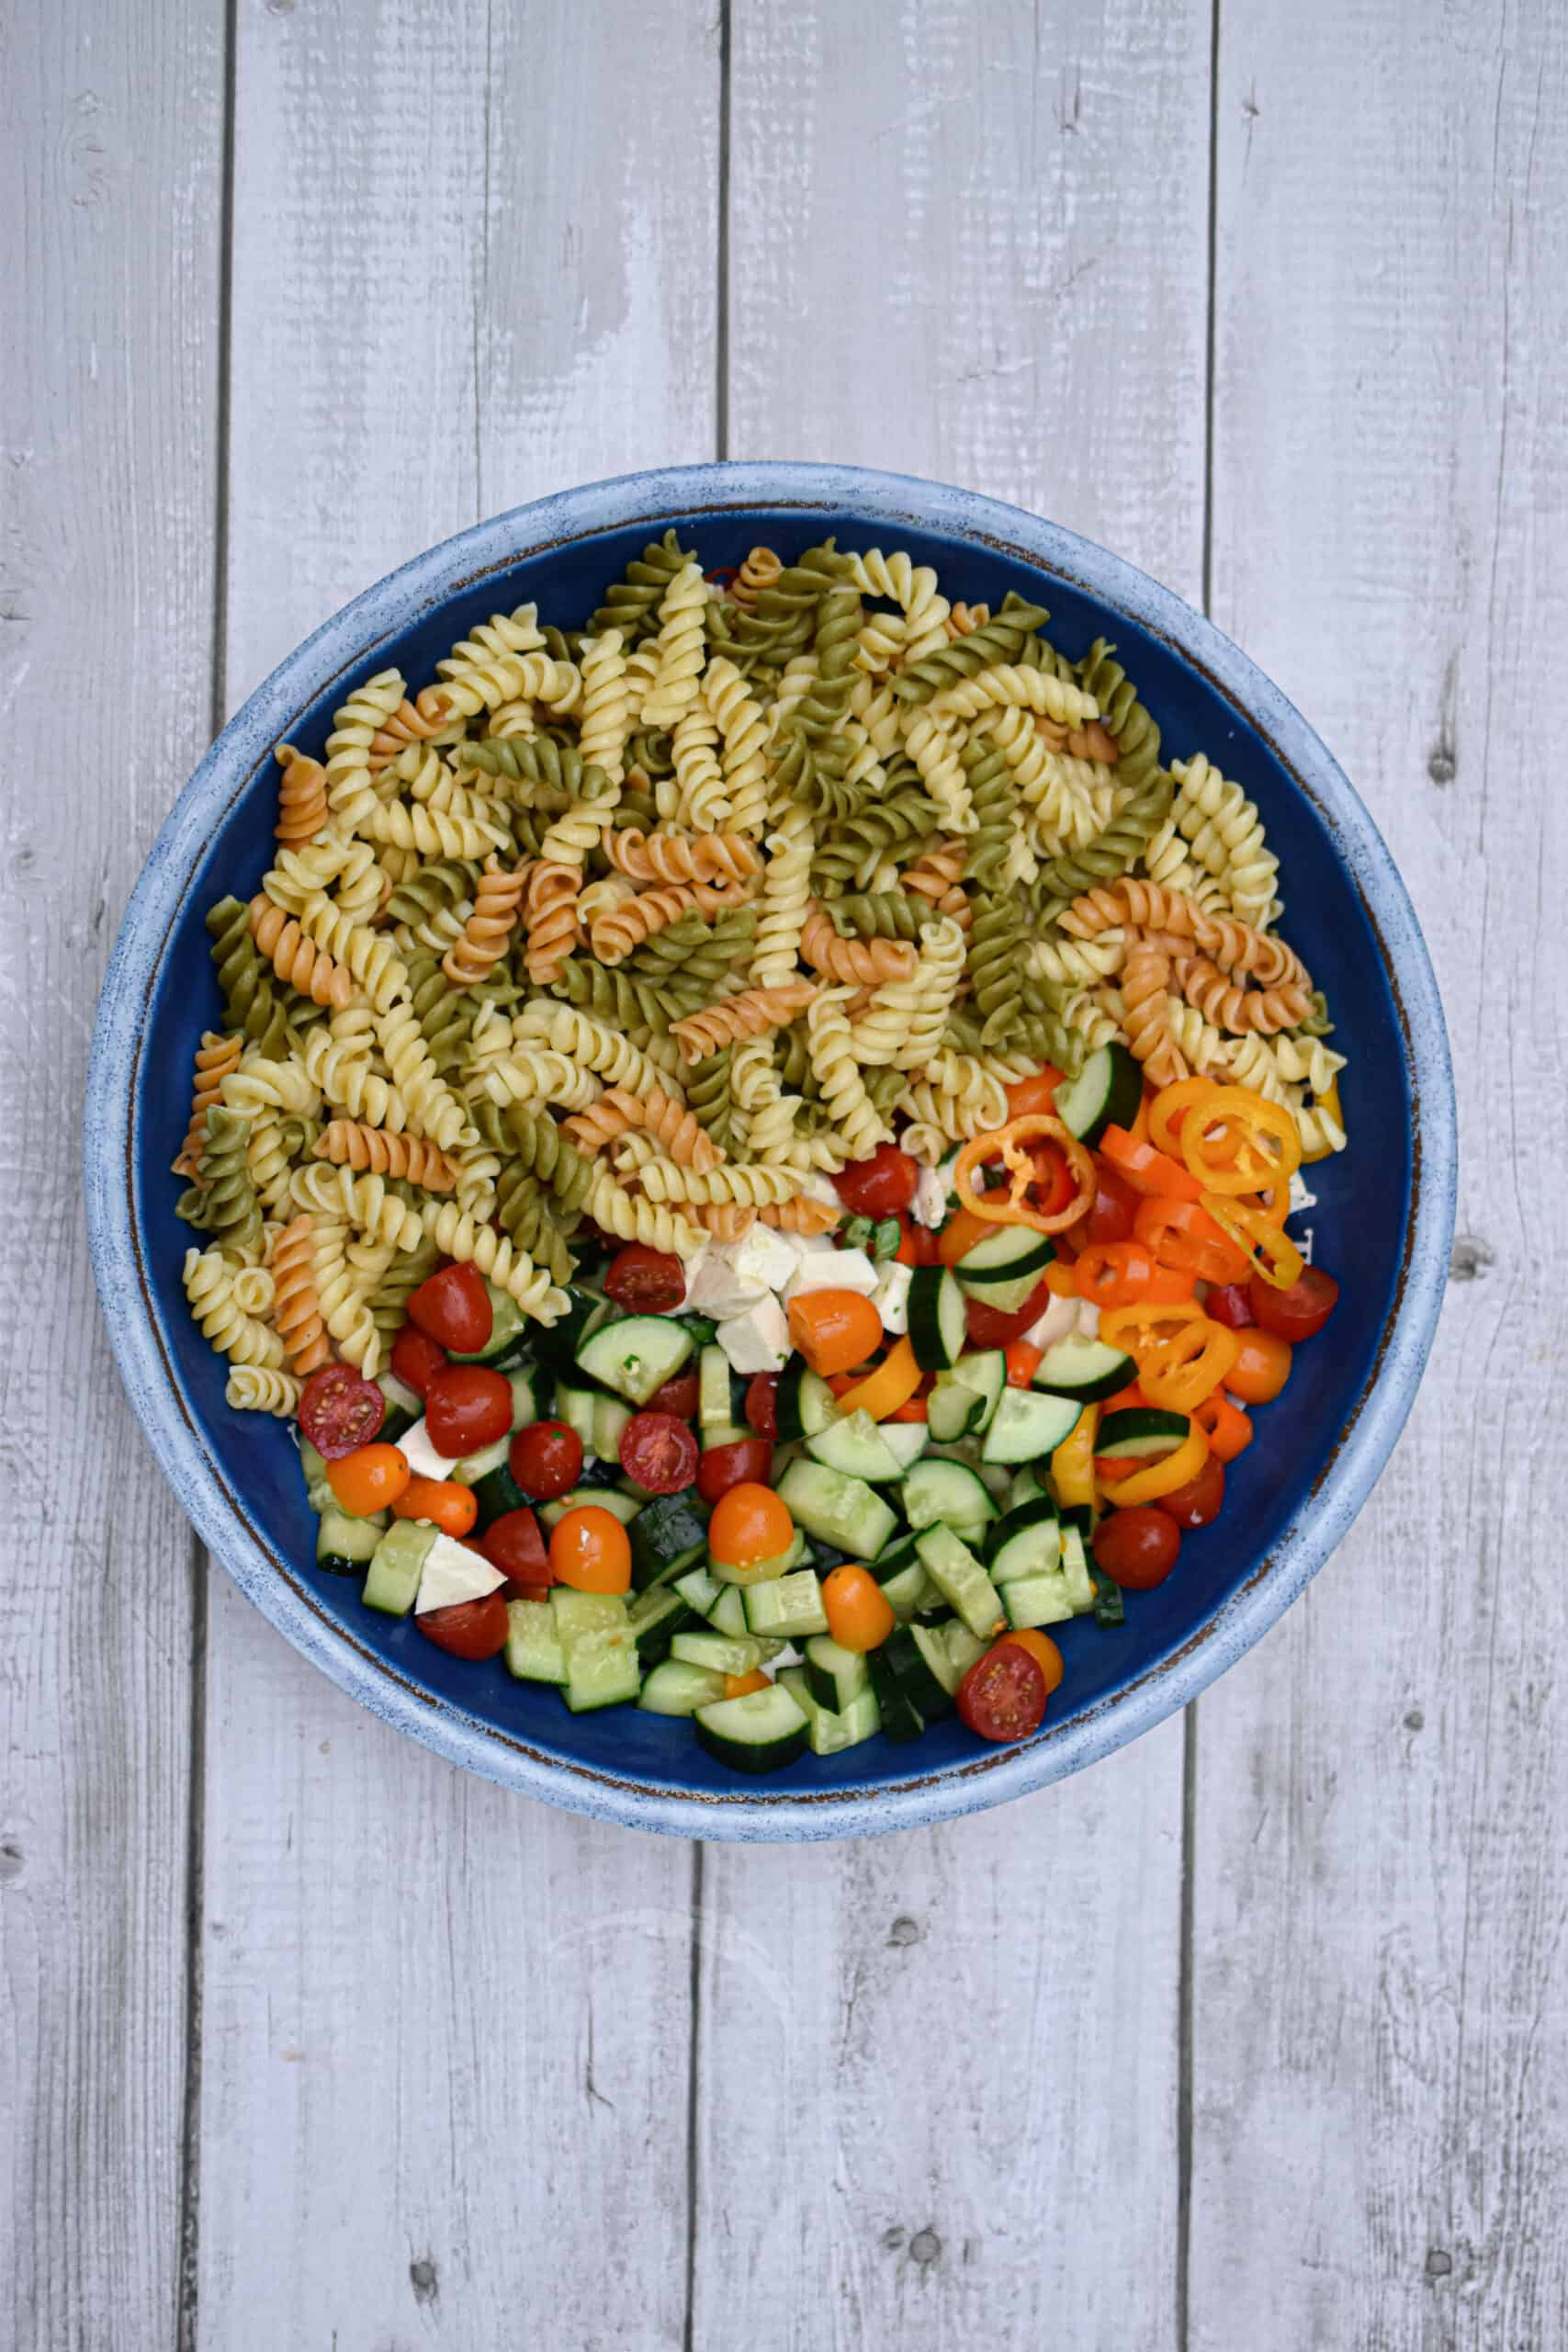 The pasta is add to the bowl for the garden vegetable and herb pasta salad